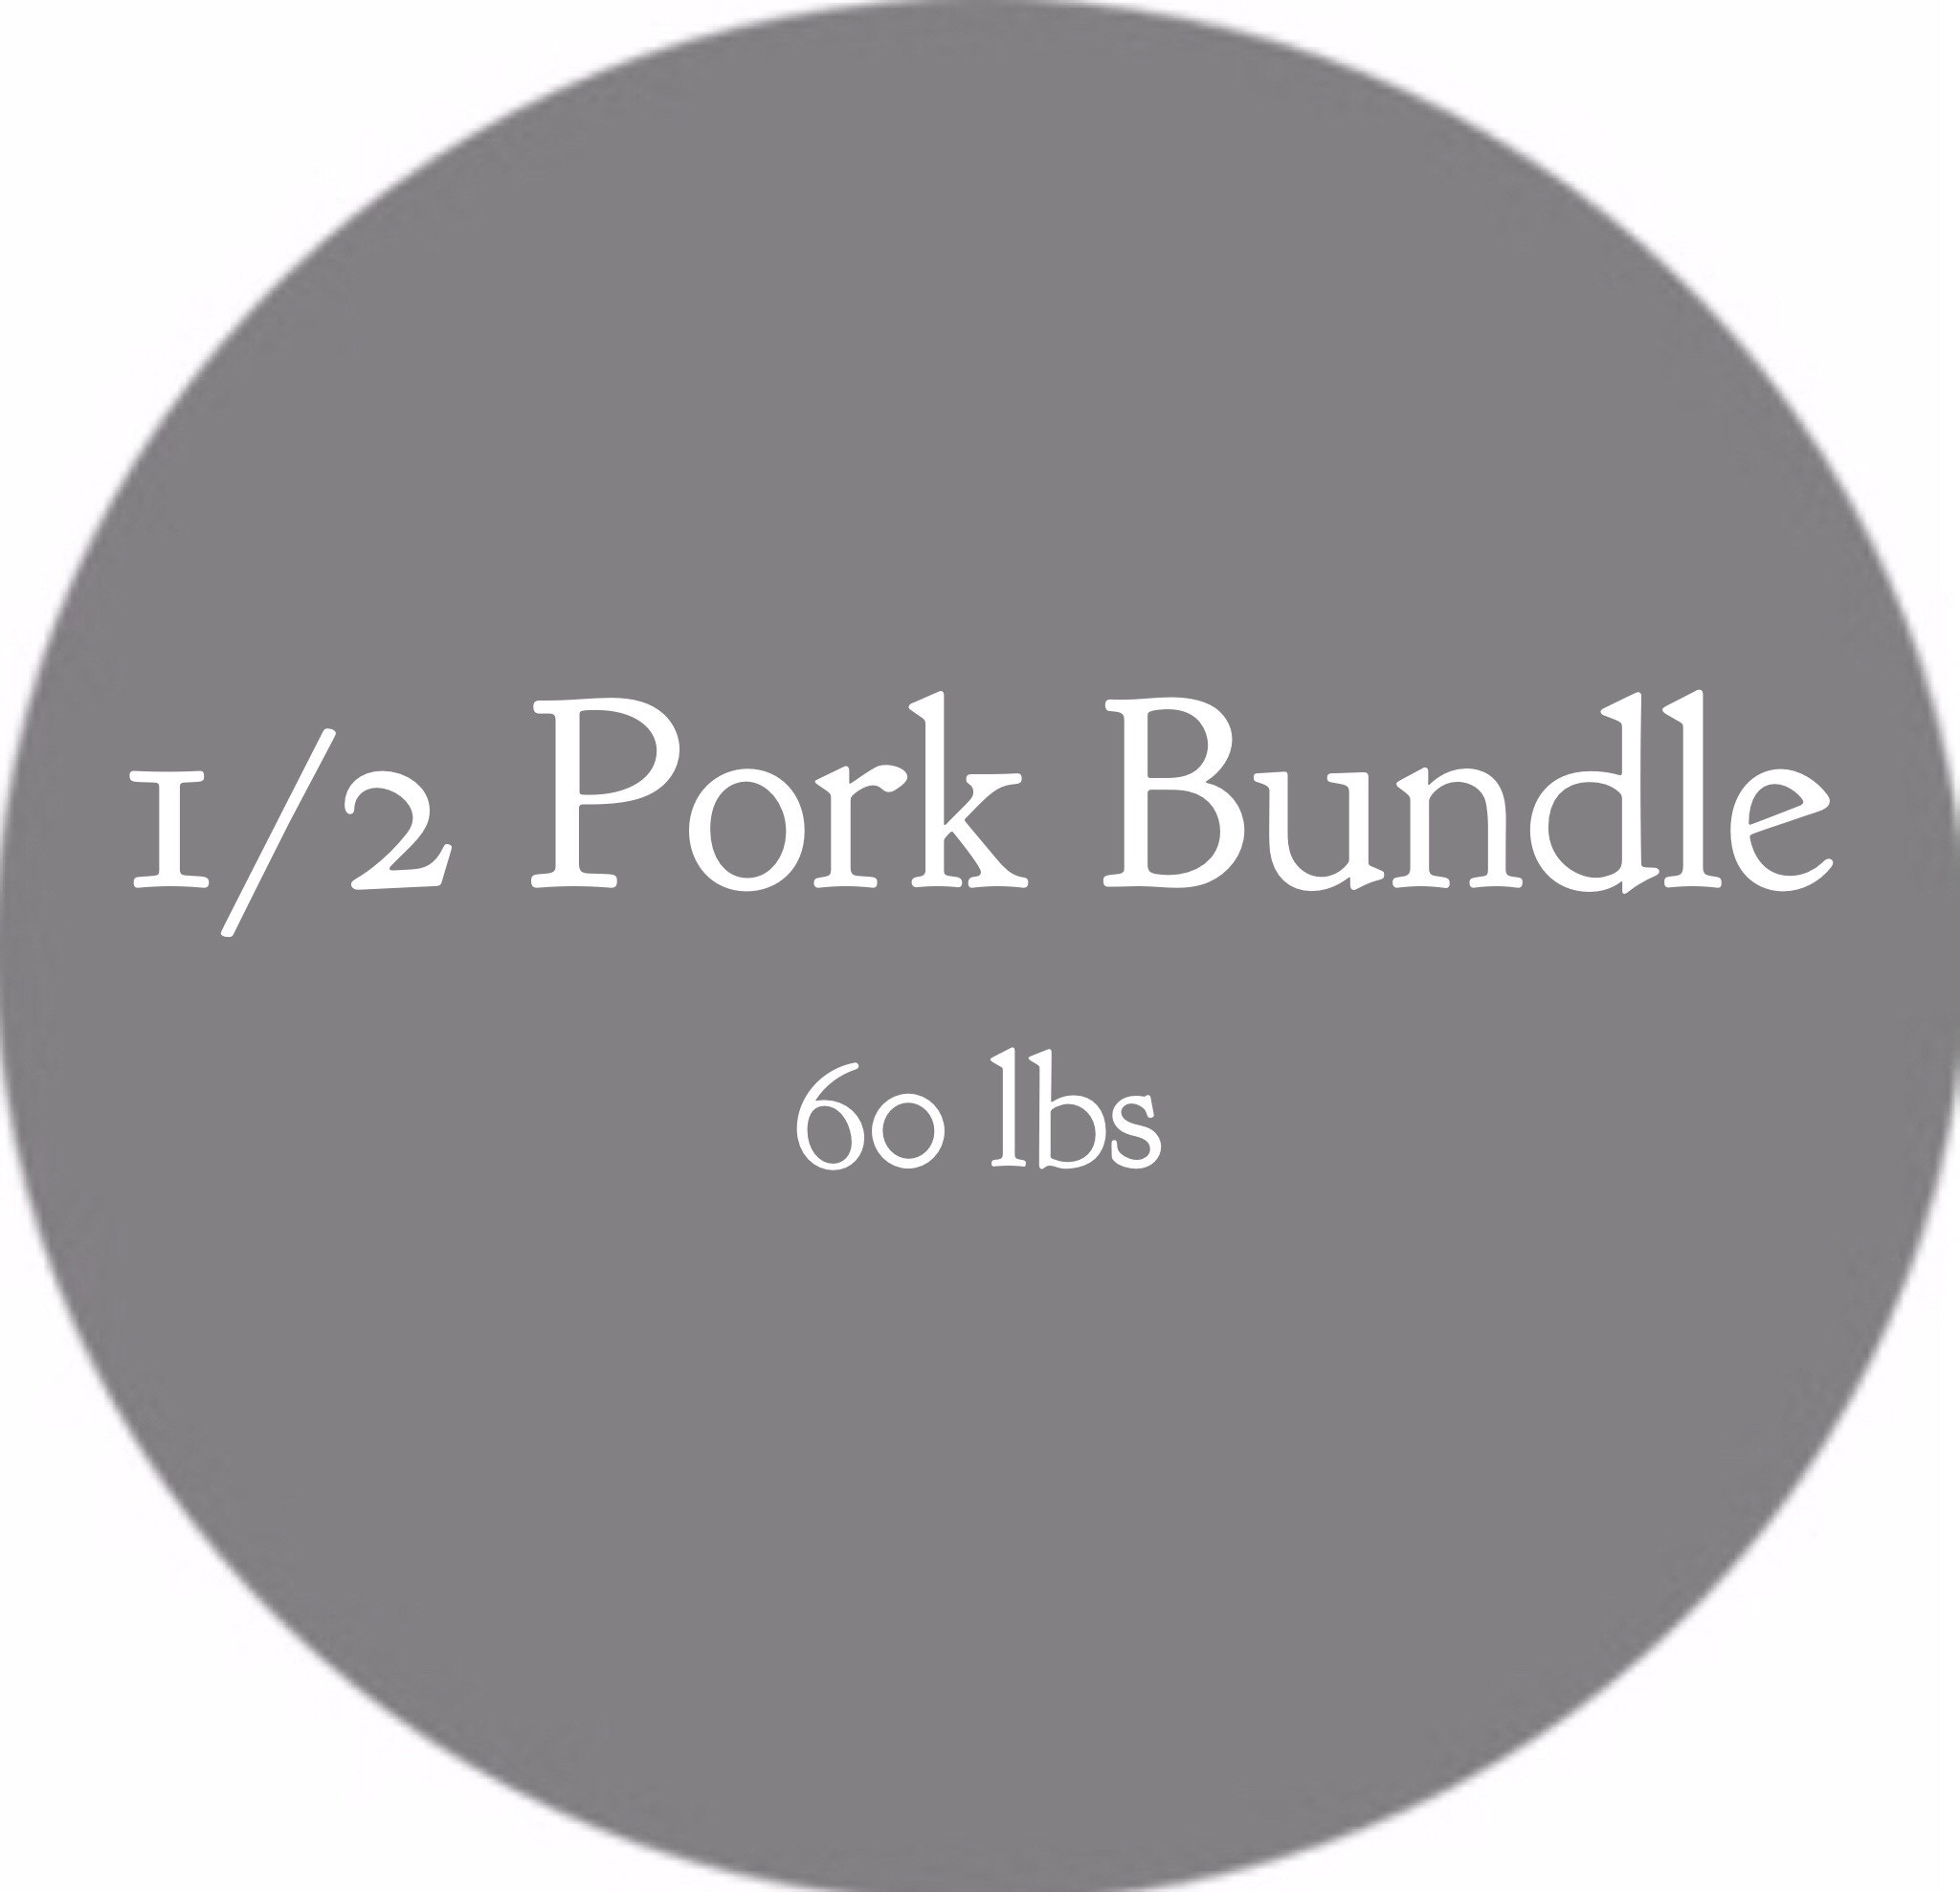 1/2 Pork Bundle- 60 lbs